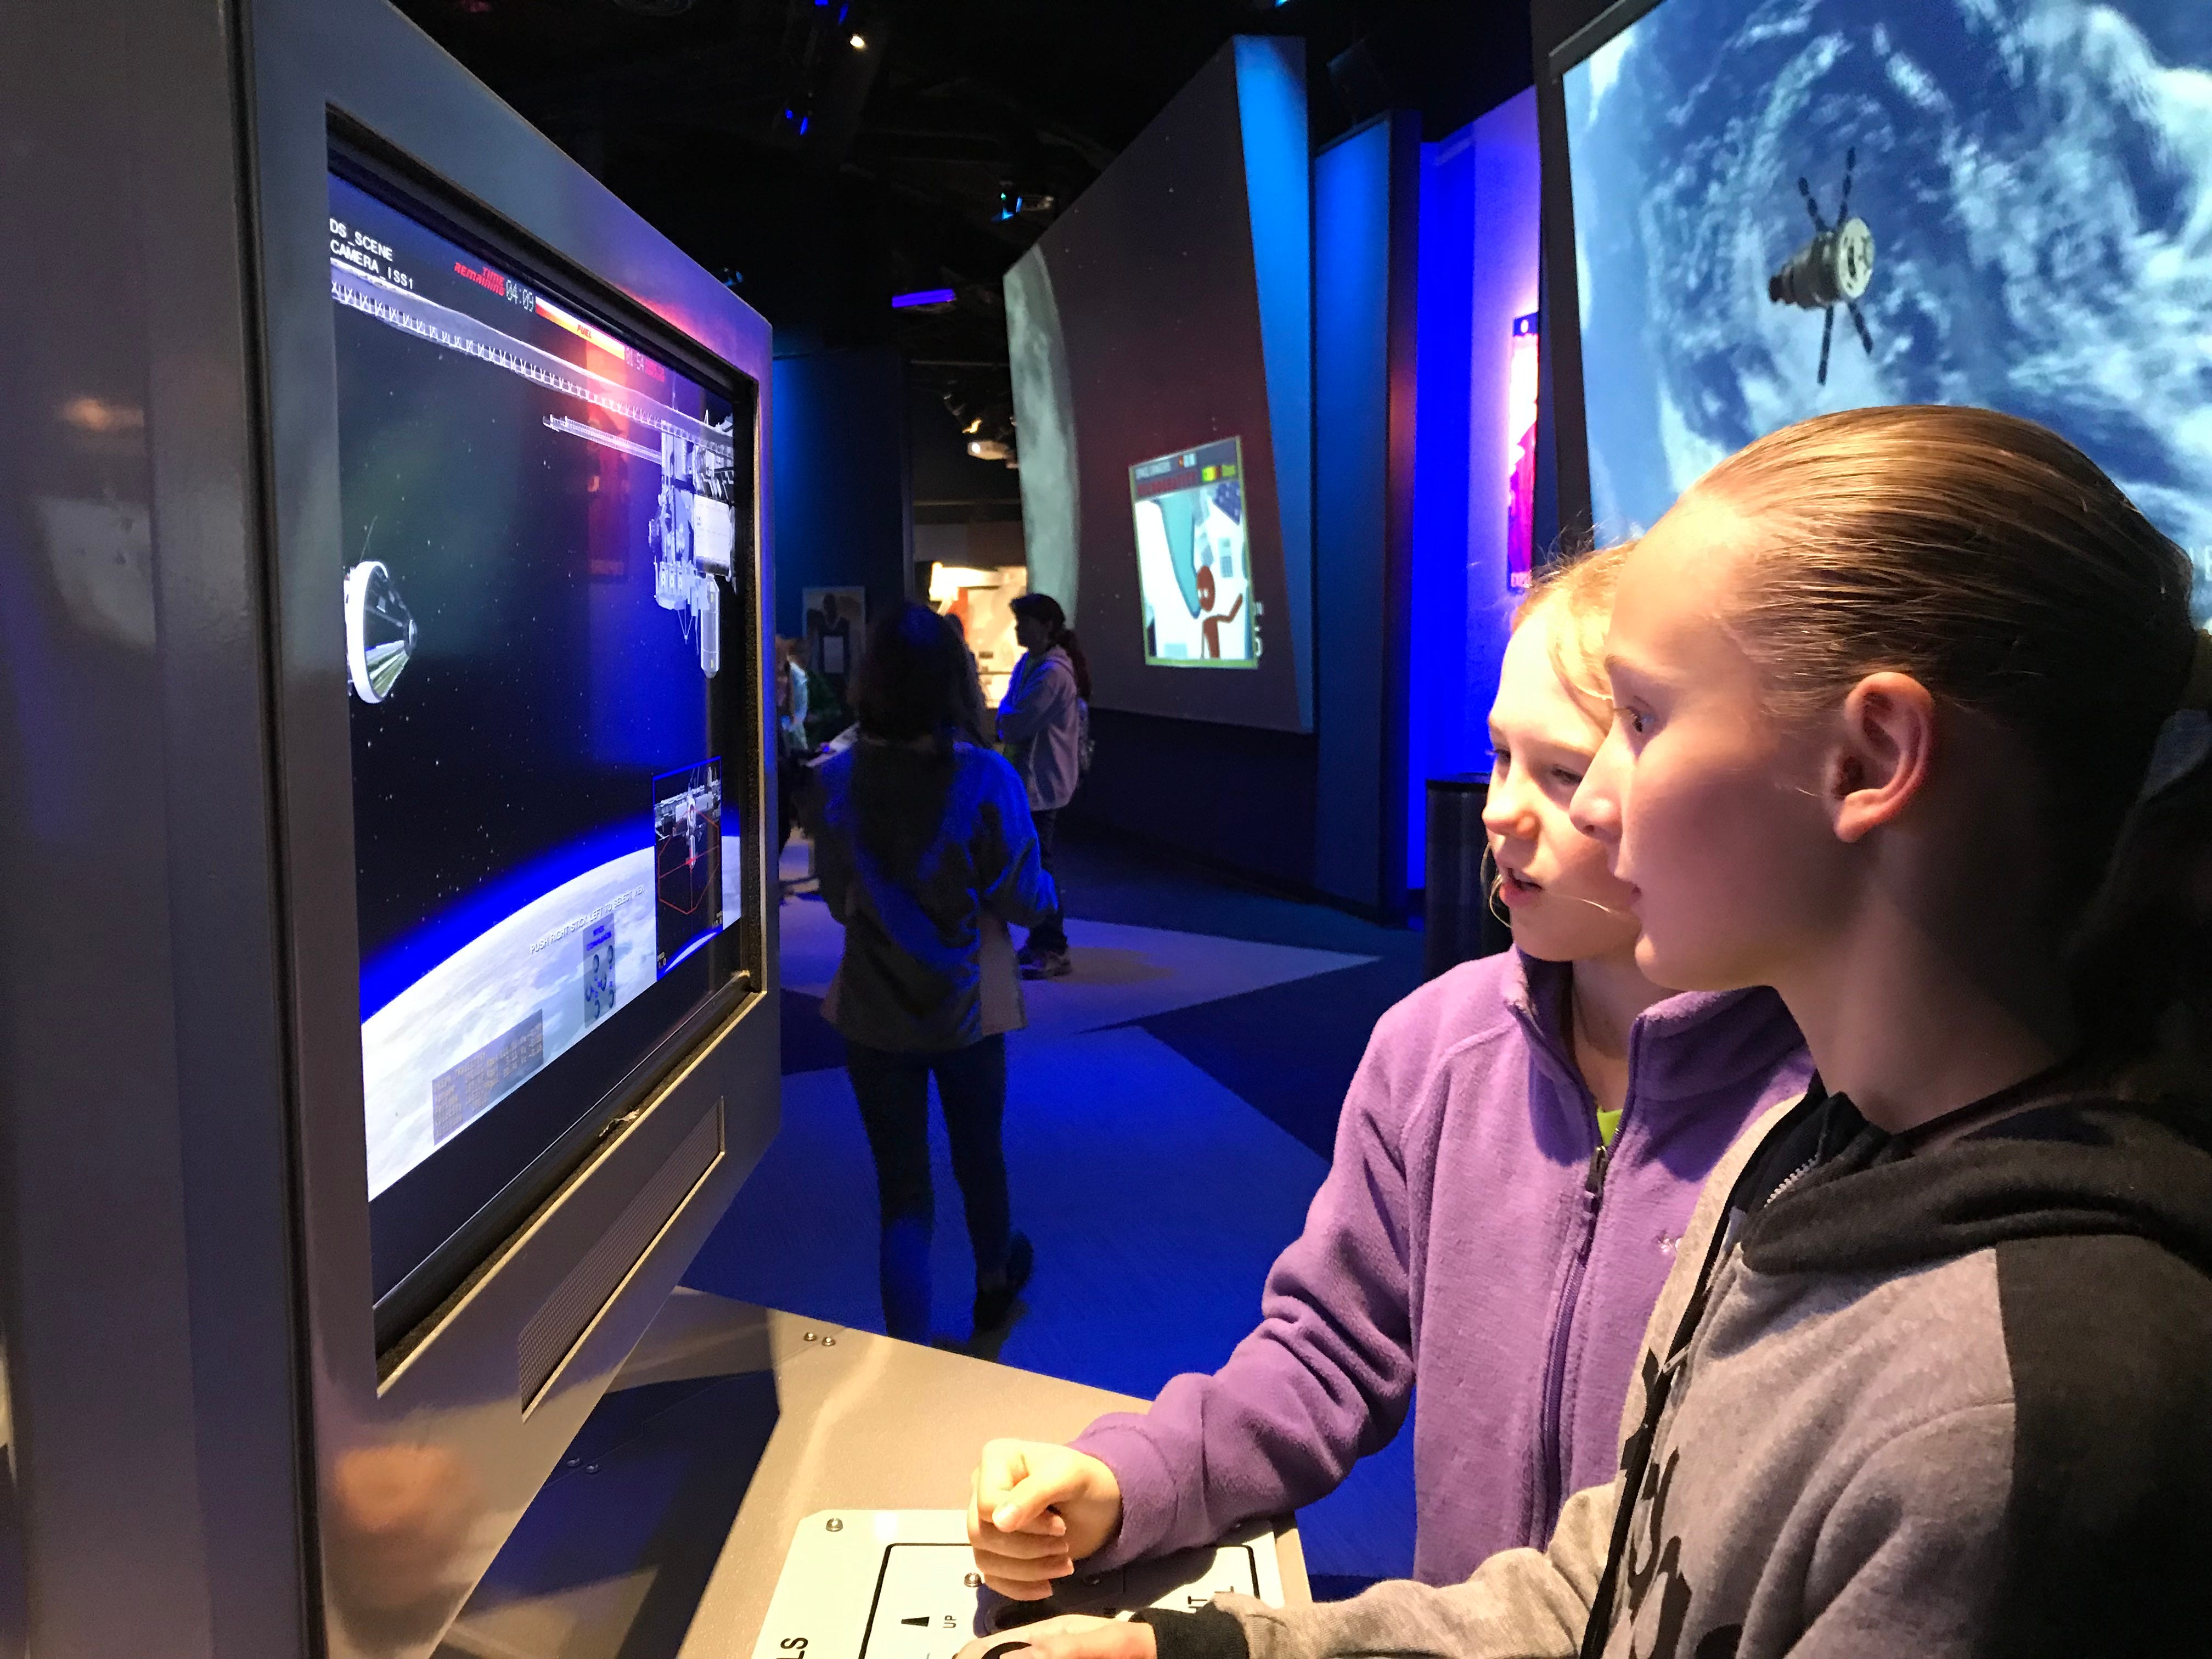 South Lake Elementary School students, Lexi Morris, 11, and Ada Howarter, 11, learn about launching a spacecraft at Journey to Mars at Kennedy Space Center Visitor Complex.